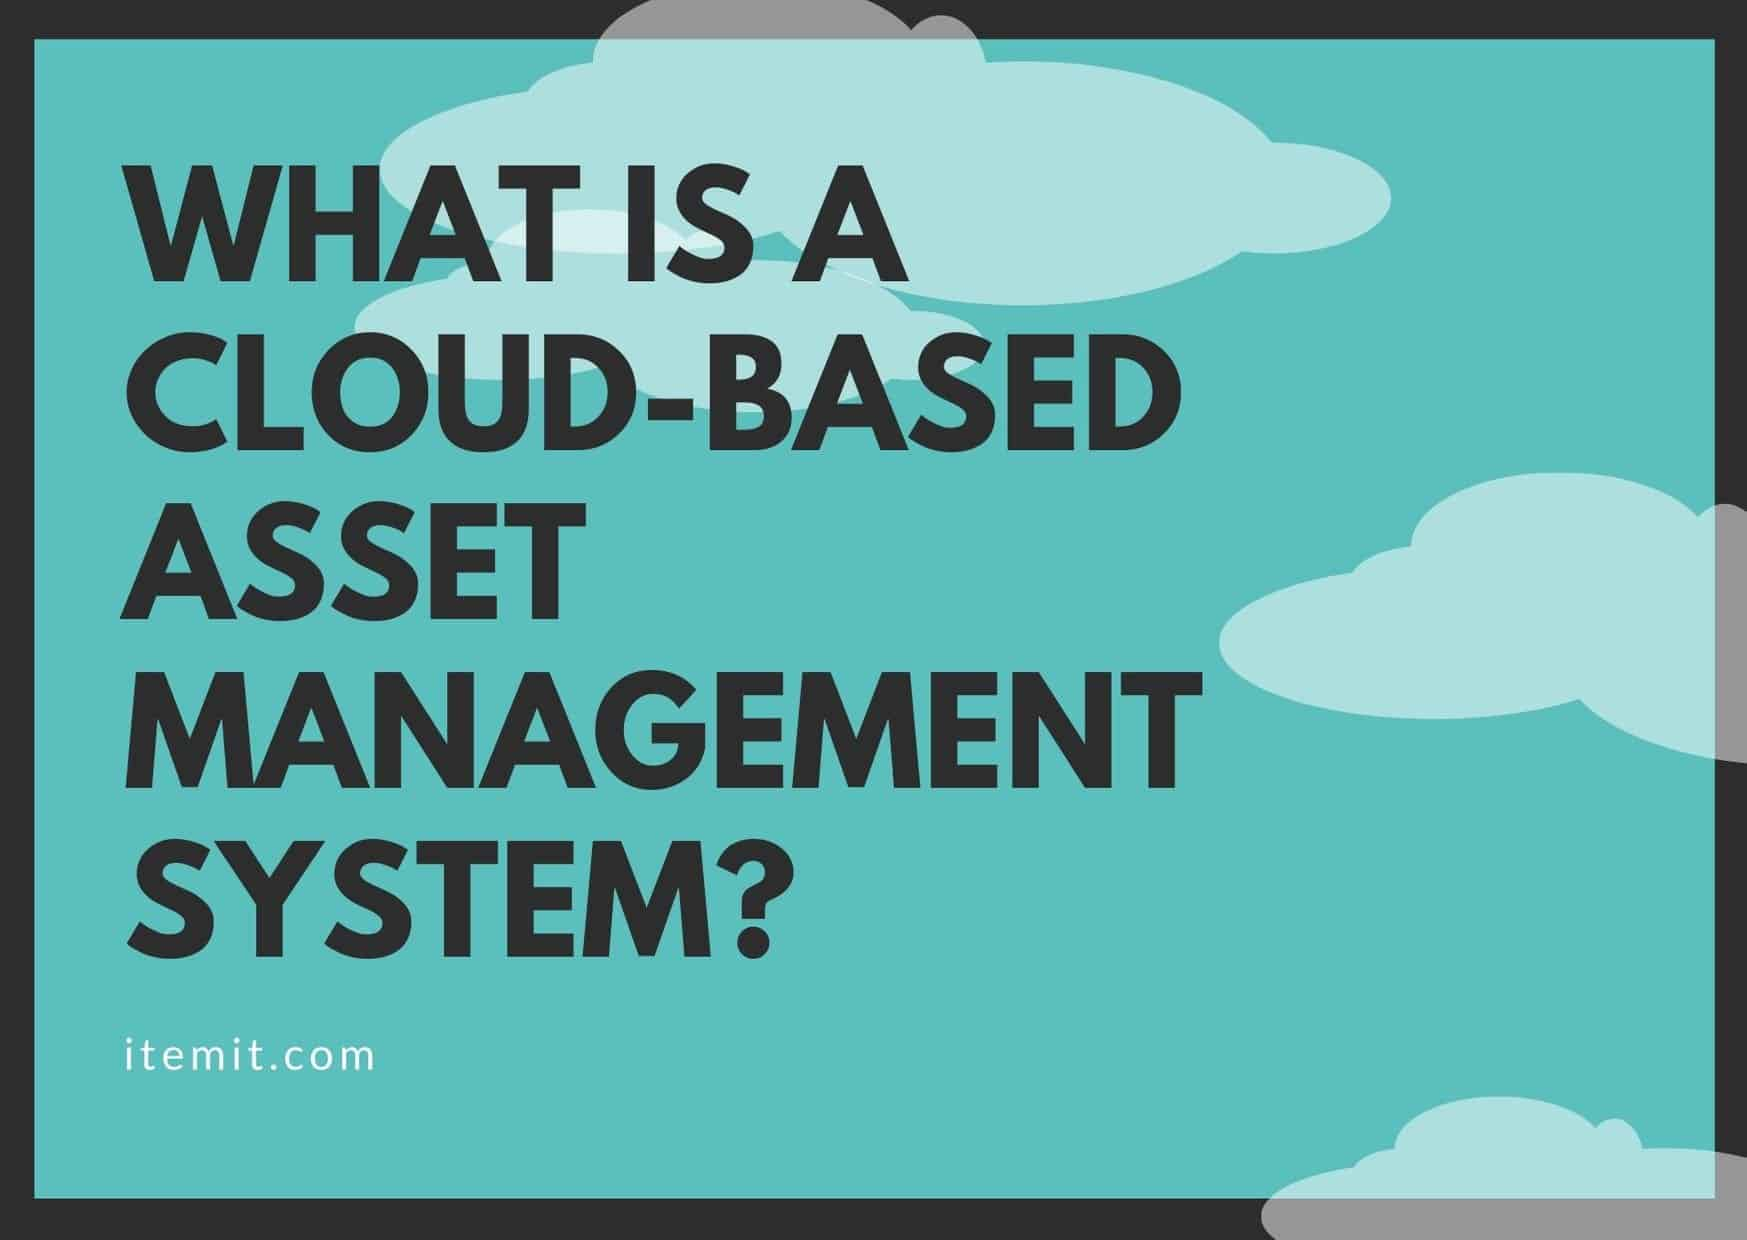 what is a cloud-based asset management system?